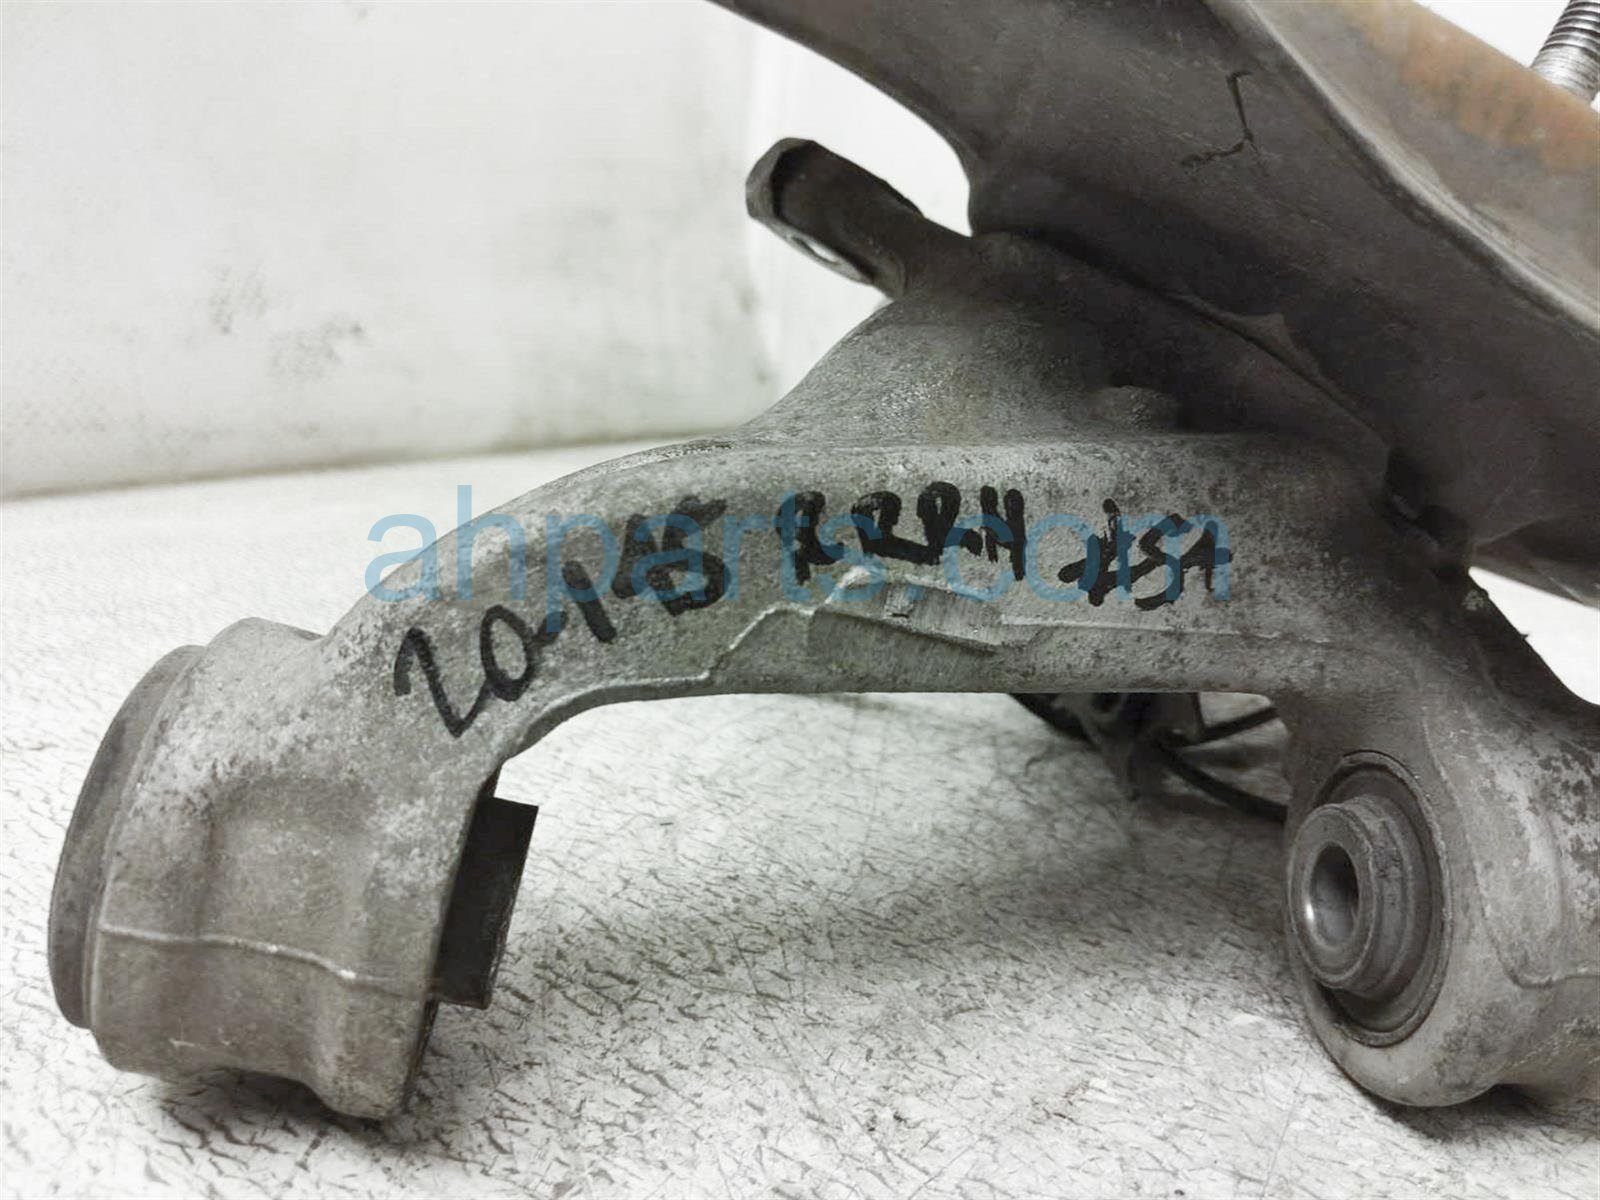 2012 Honda Civic Axle Stub Rear Passenger Spindle Knuckle Hub 52210 TR0 A50 Replacement